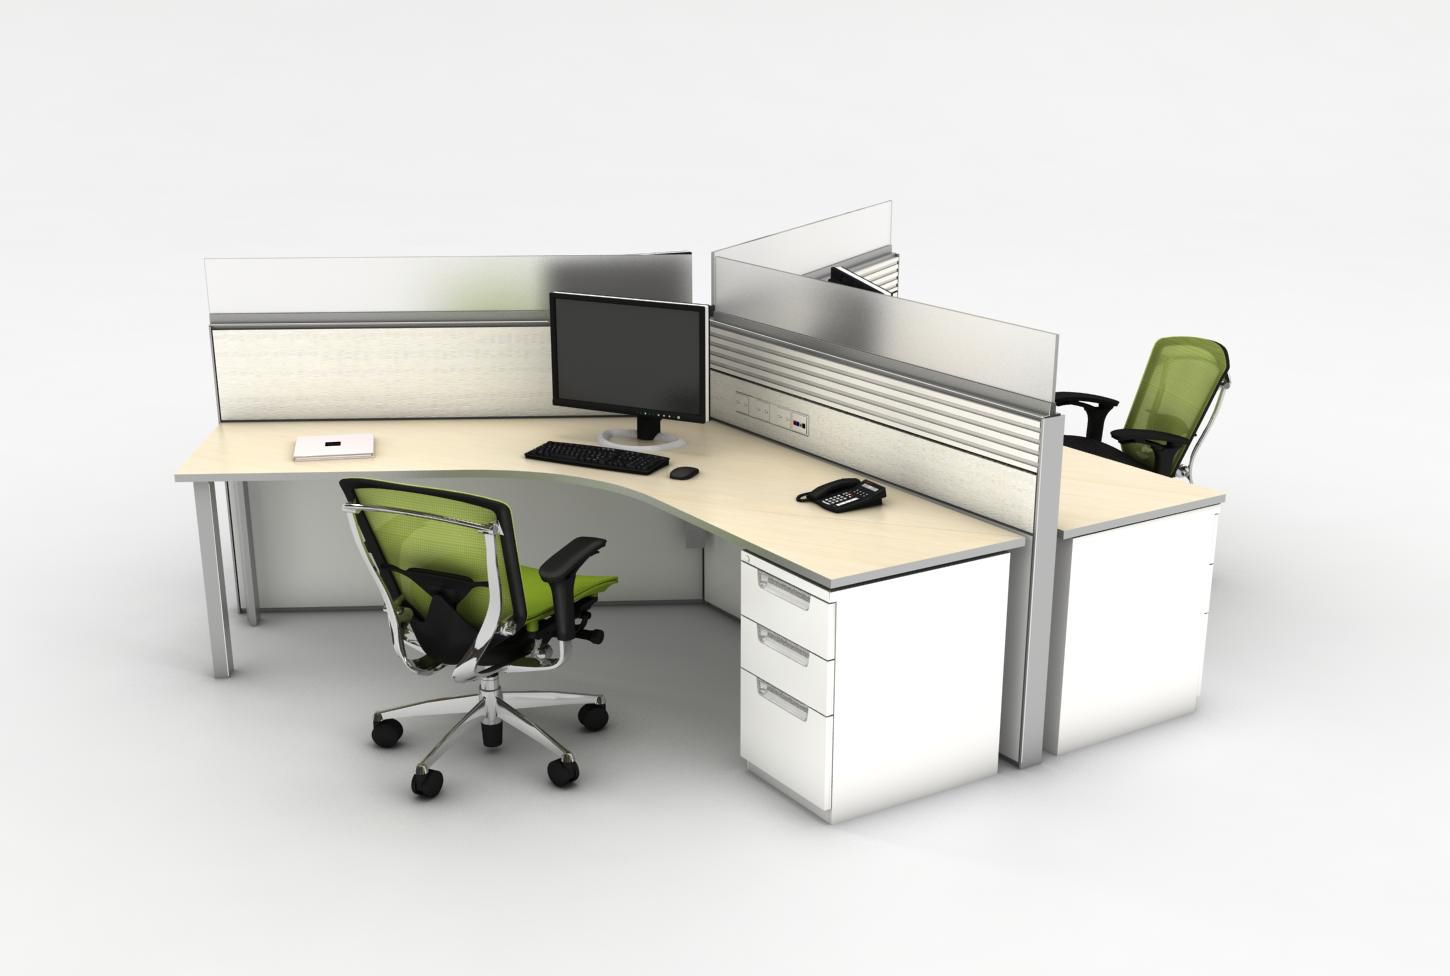 Desk kickstand furniture - Teknion District 120 Degree